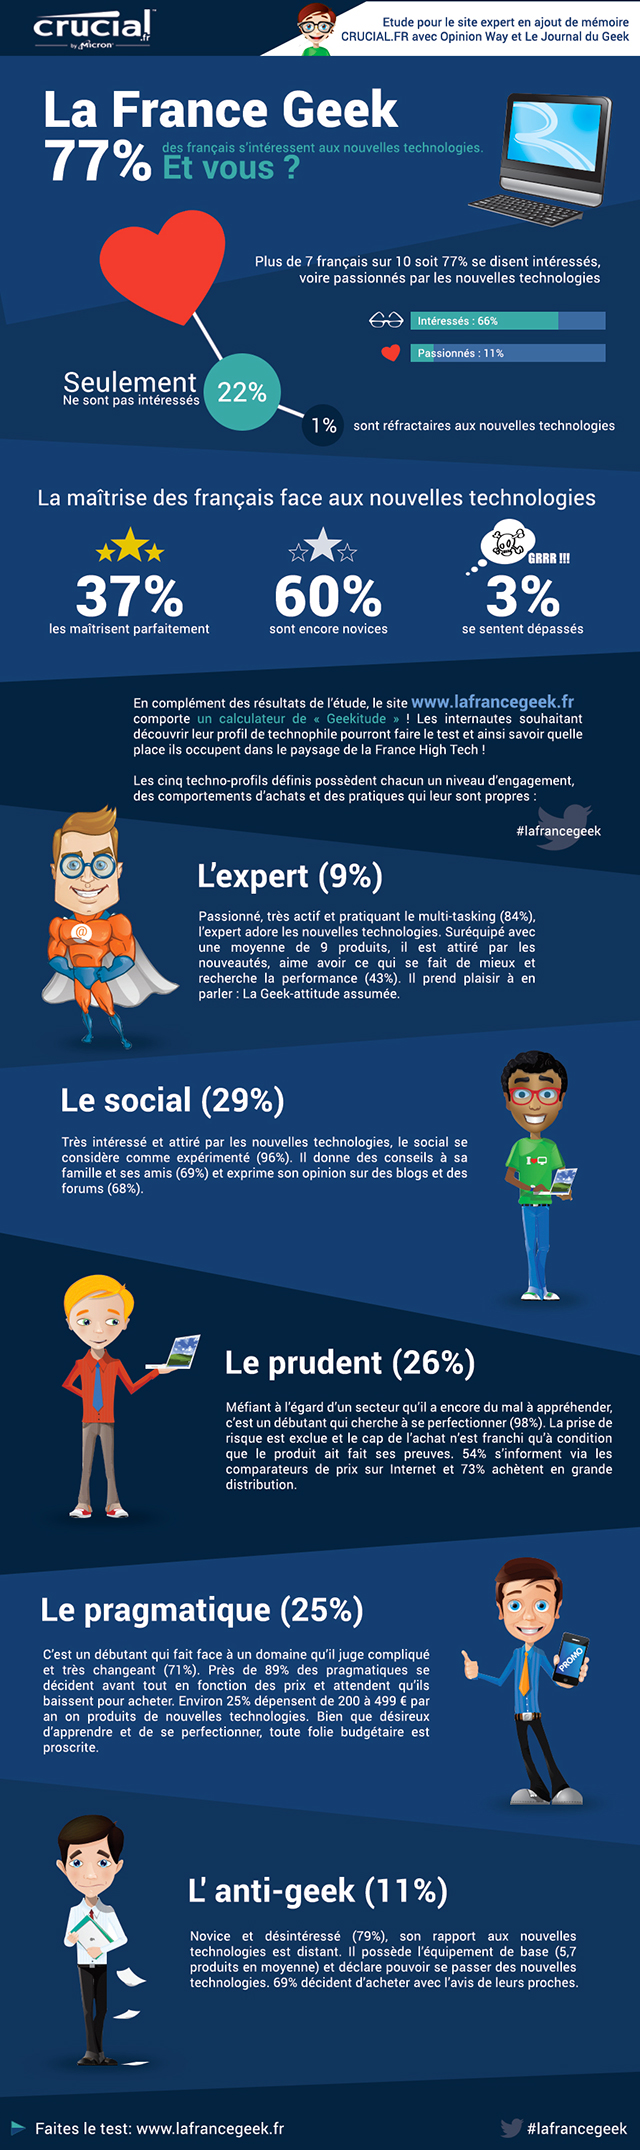 Infographie Crucial